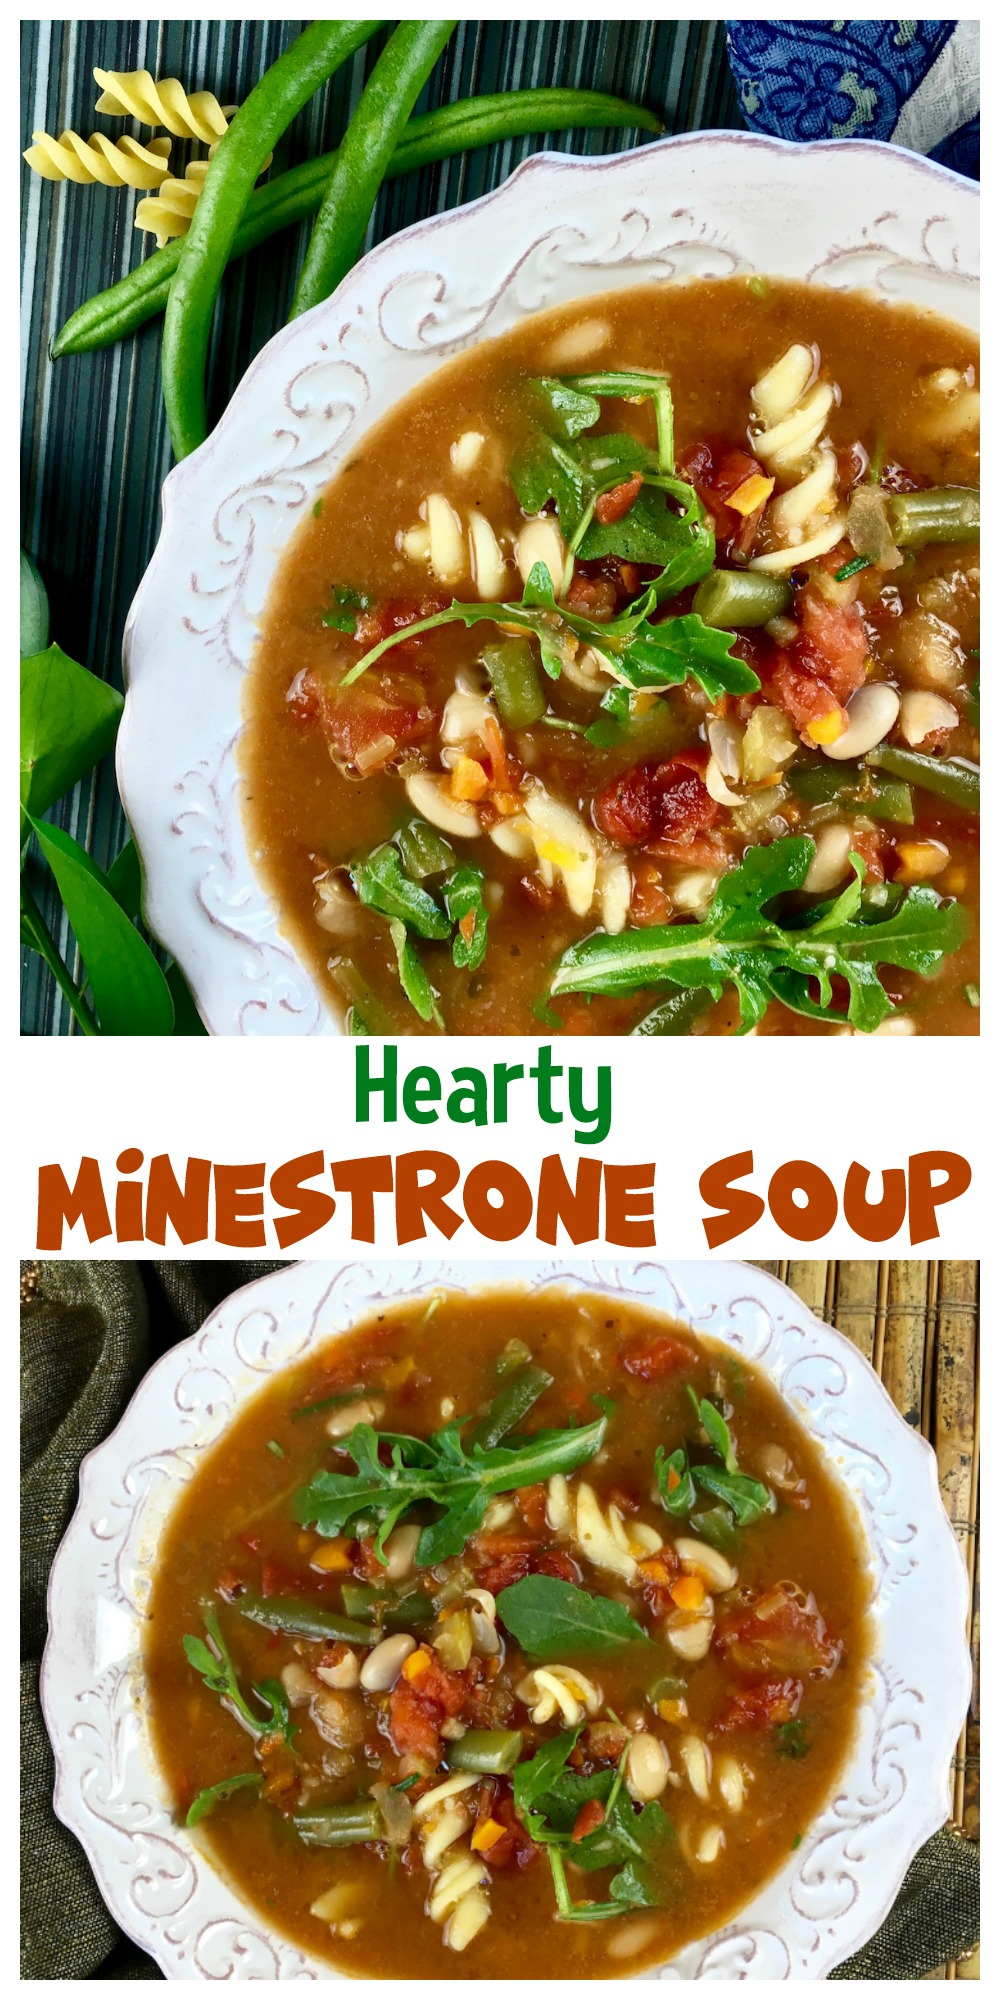 This satisfying hearty minestrone soup features a classic combination of fresh herbs, vegetables, white beans, and pasta. Try it for dinner, you'll like it!